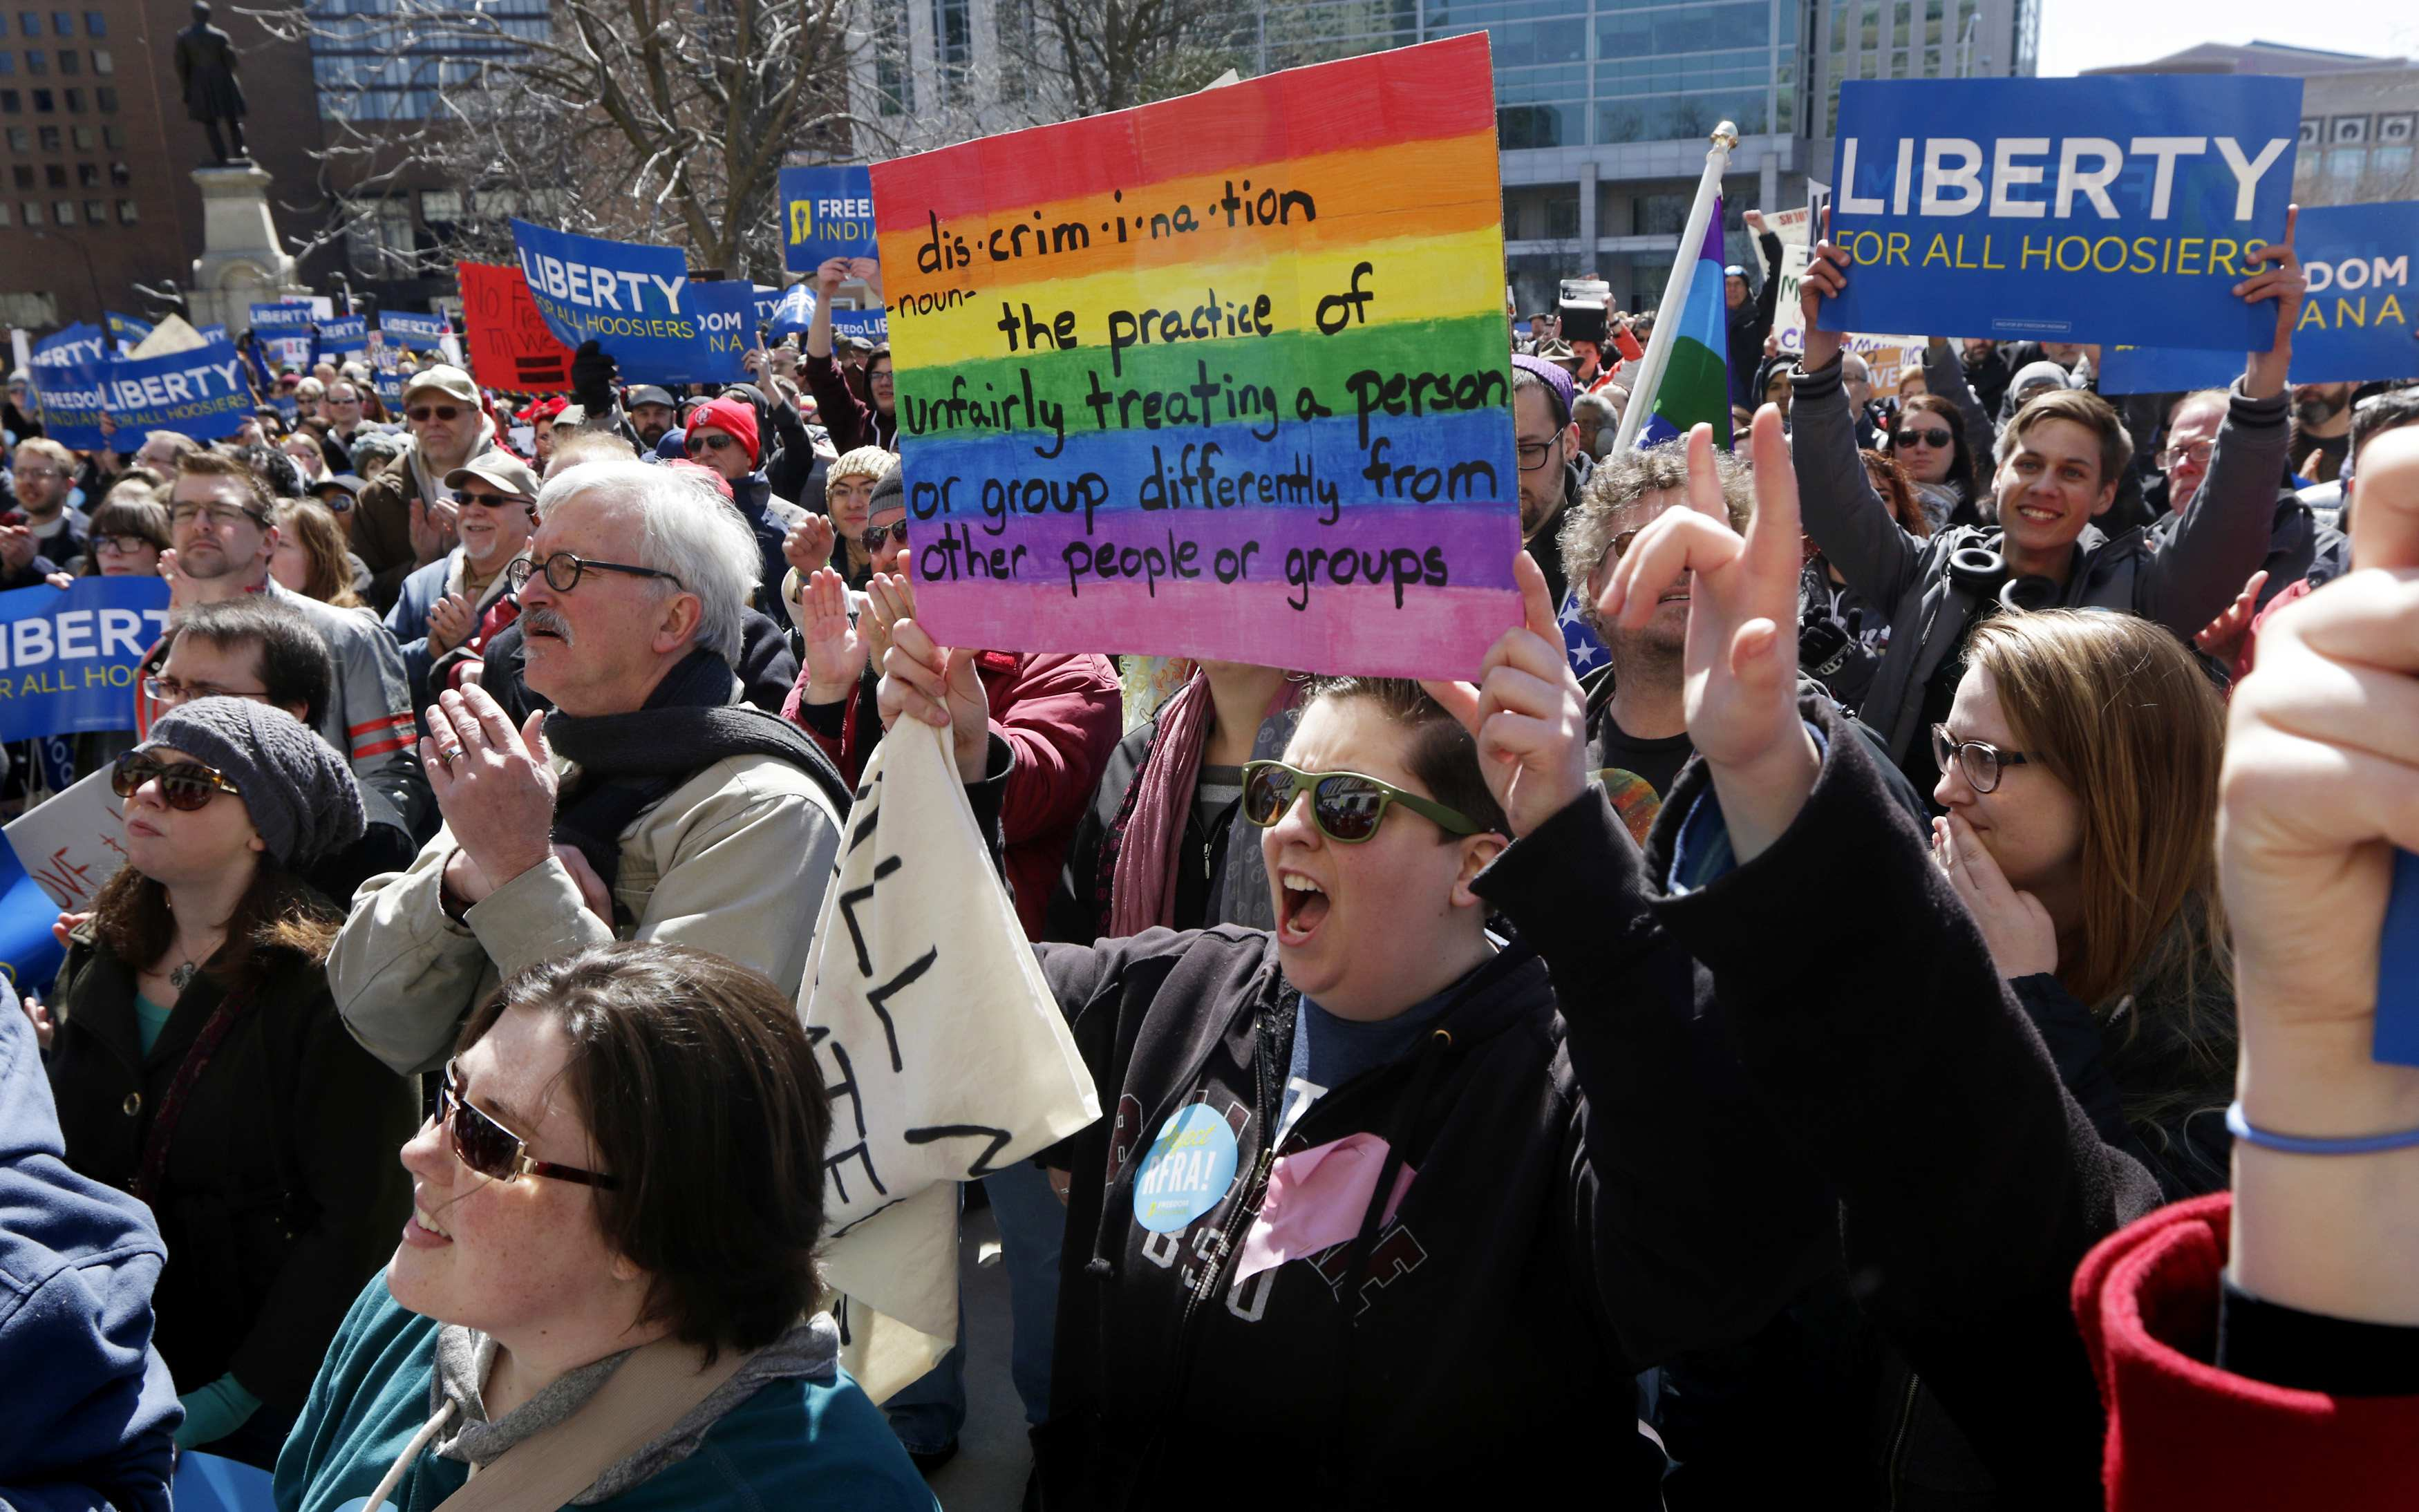 Demonstrators gather at Monument Circle to protest a controversial religious freedom bill recently signed by Governor Mike Pence during a rally in Indianapolis March 28, 2015. More than 2,000 people gathered at the Indiana State Capital Saturday to protest Indiana�s newly signed Religious Freedom Restoration Act saying it would promote discrimination against individuals based on sexual orientation. REUTERS/Nate Chute